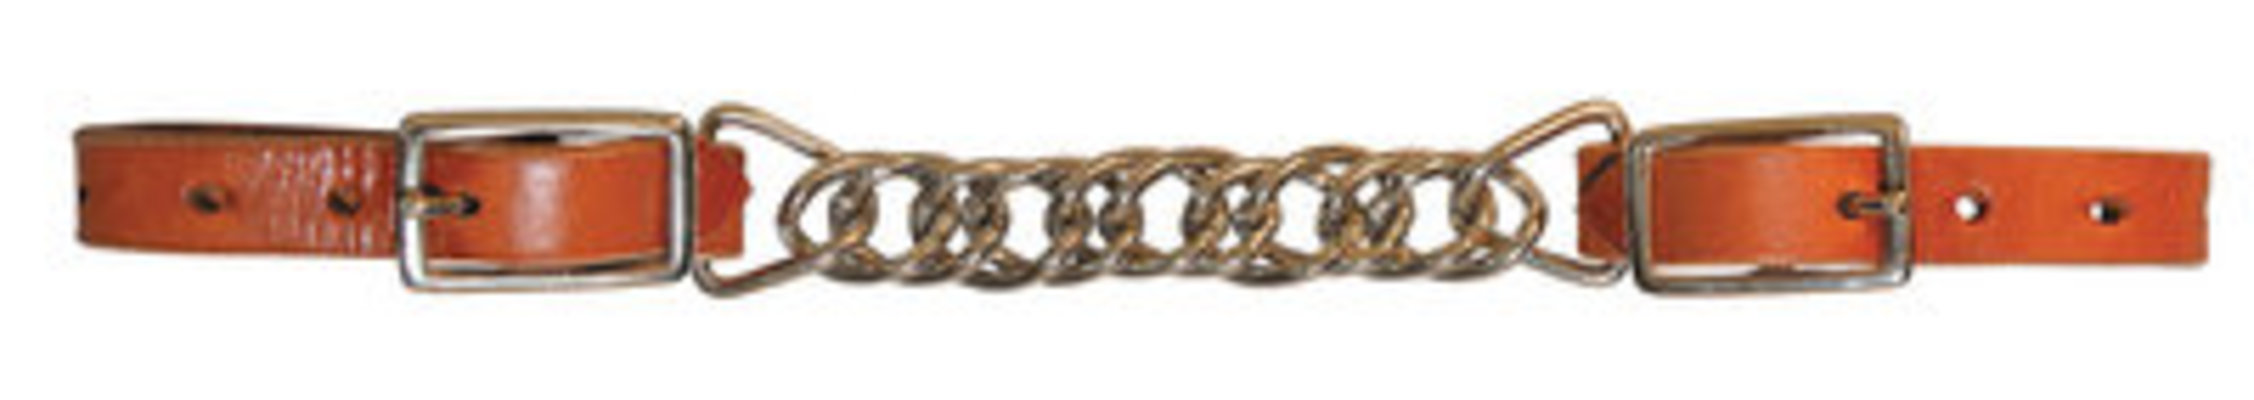 "Circle Y 4.5"" Double Flat Link Curb Chain"